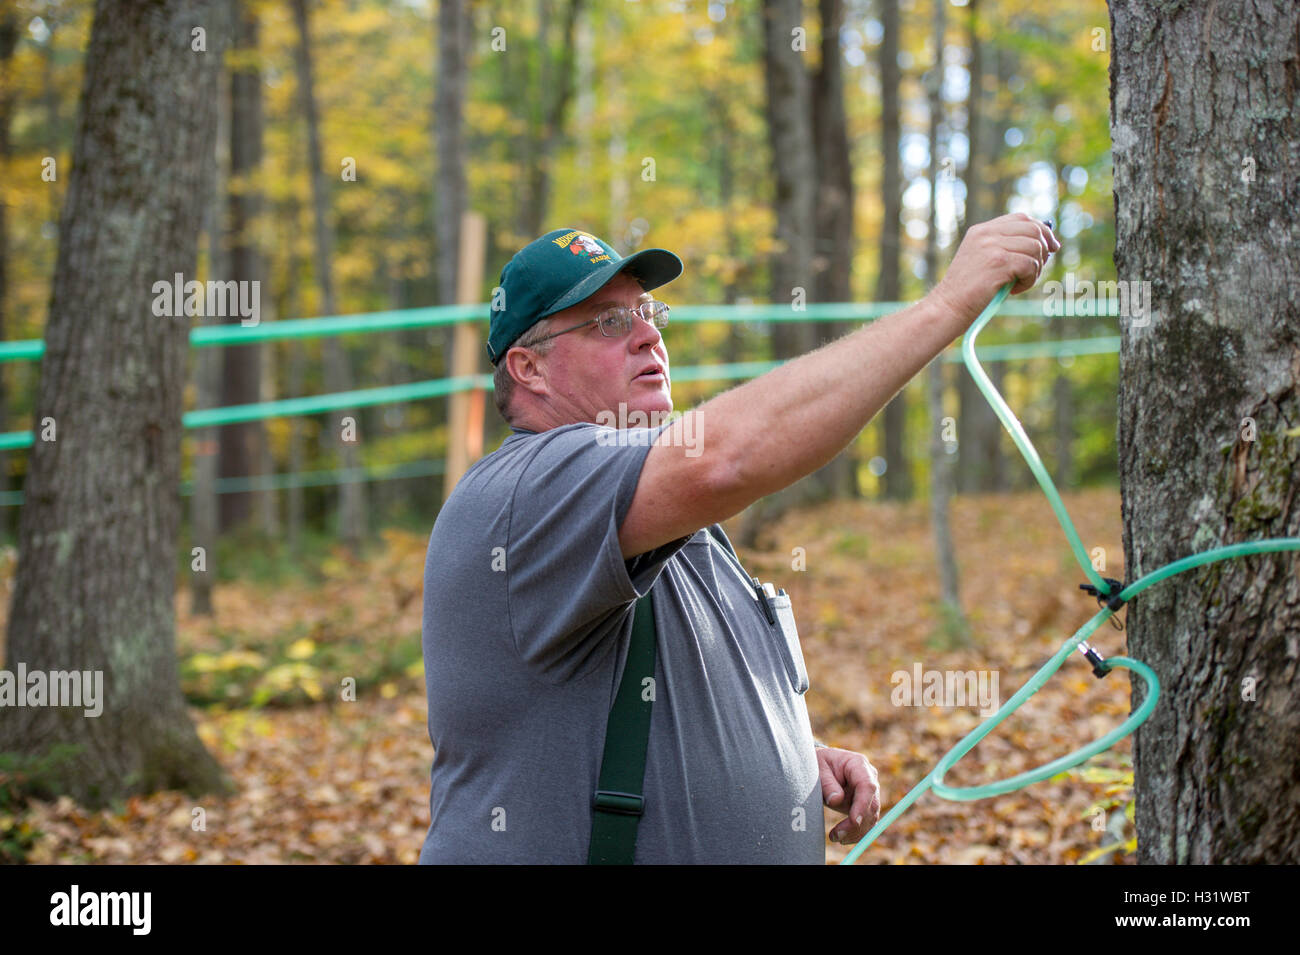 Man setting up tubes to tap maple trees to make maple syrup in Gorham, Maine. - Stock Image